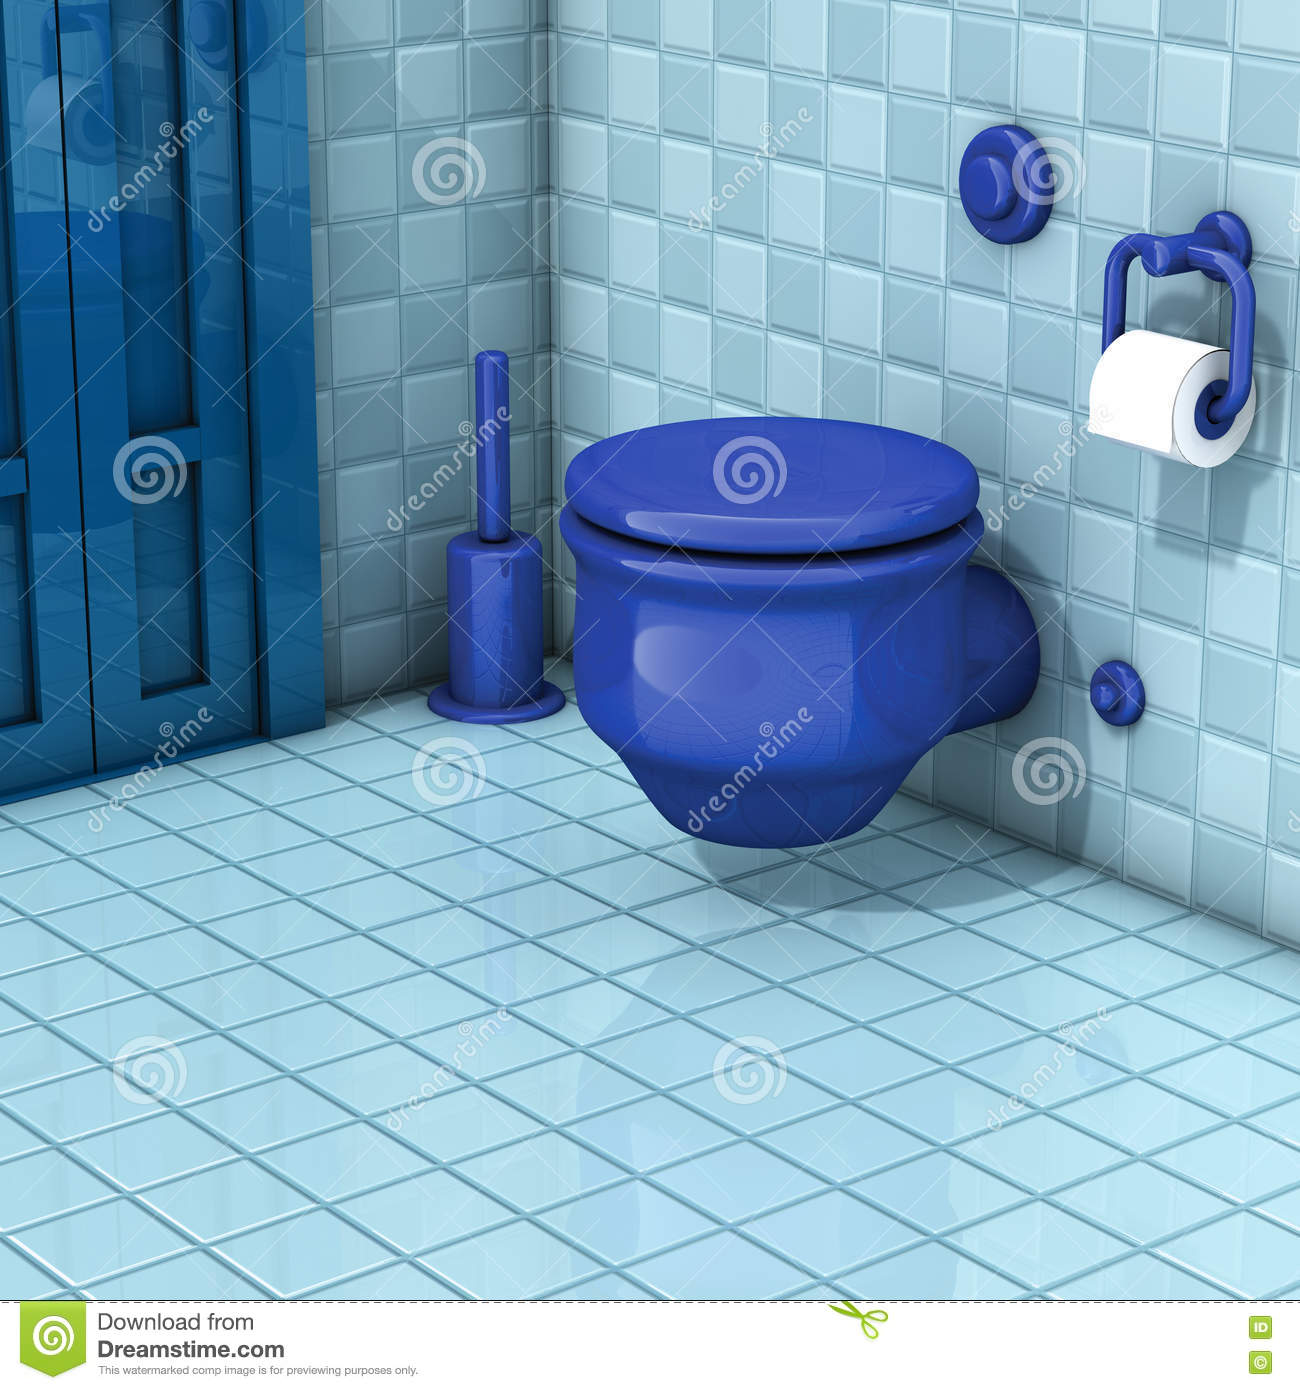 Bathroom with toilet tiles stock illustration. Illustration of ...